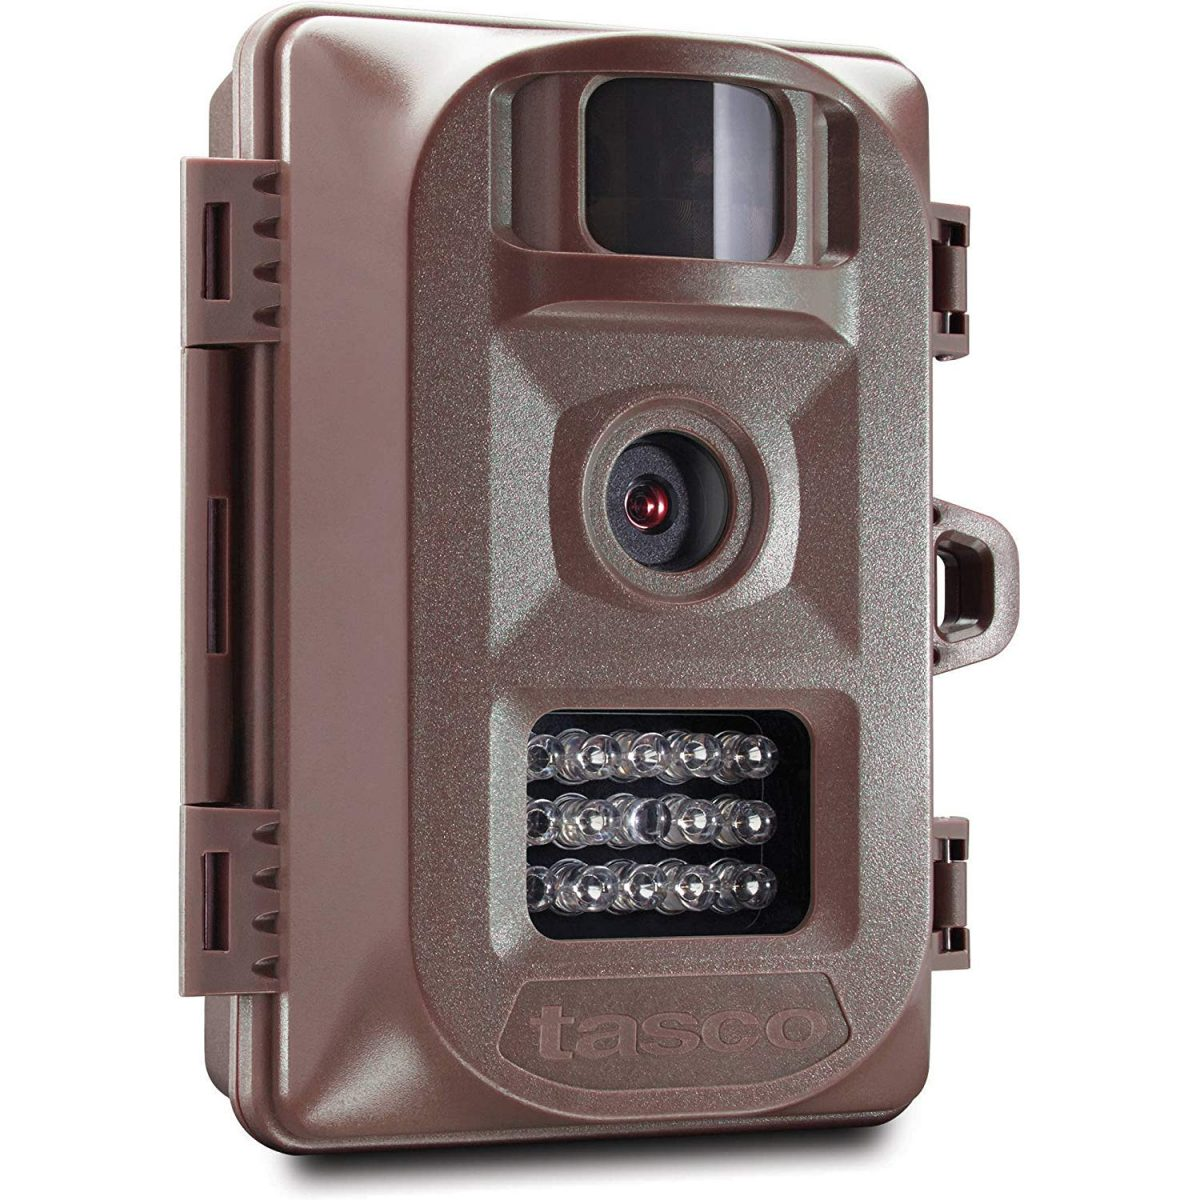 Tasco trail camera, trail camera